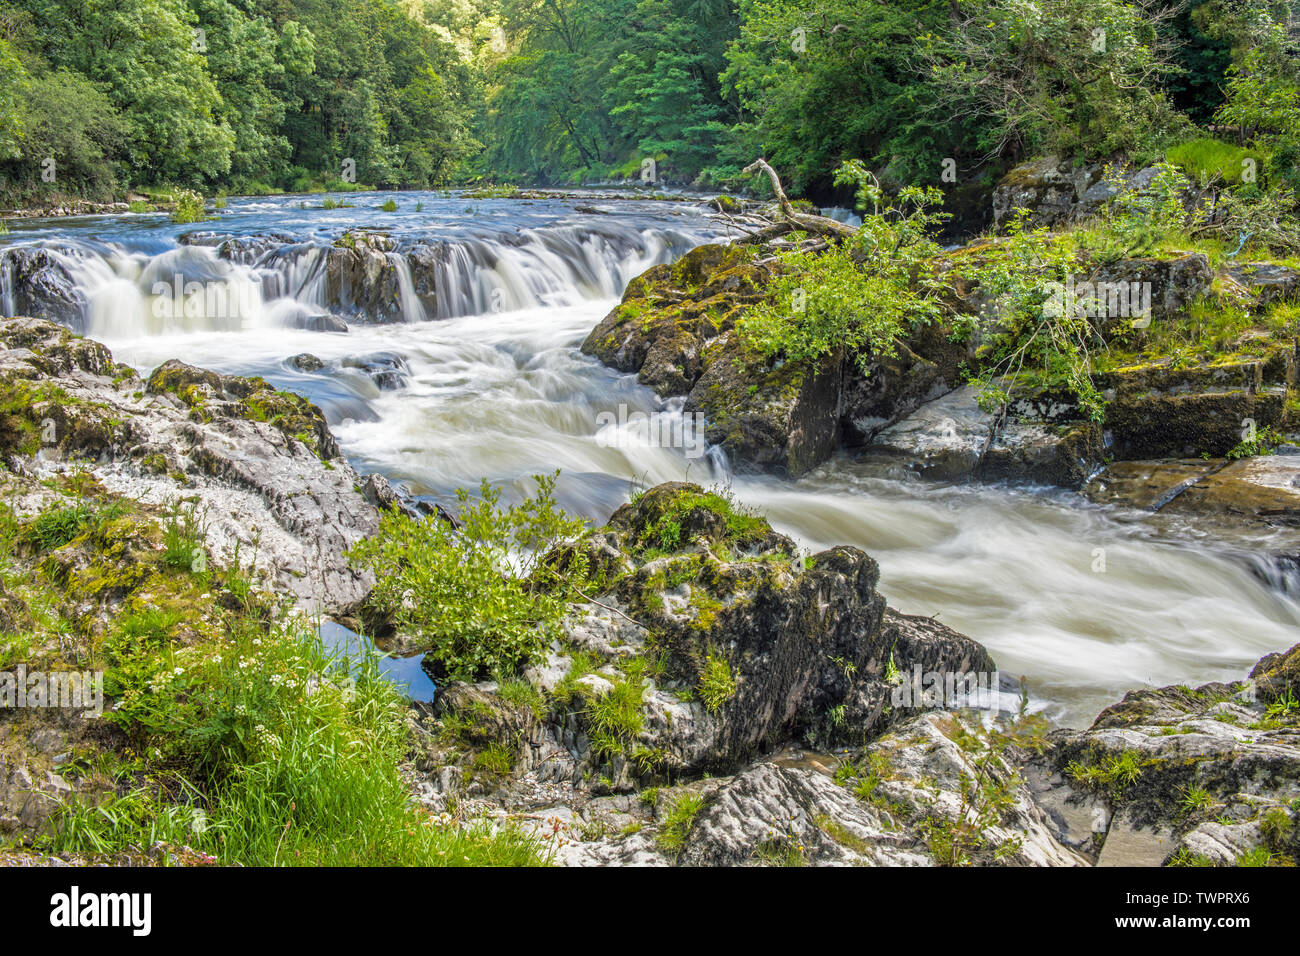 The Cenarth Falls on the River Teifi on the Carmarthenshire Cardiganshire Border in West Wales - Stock Image